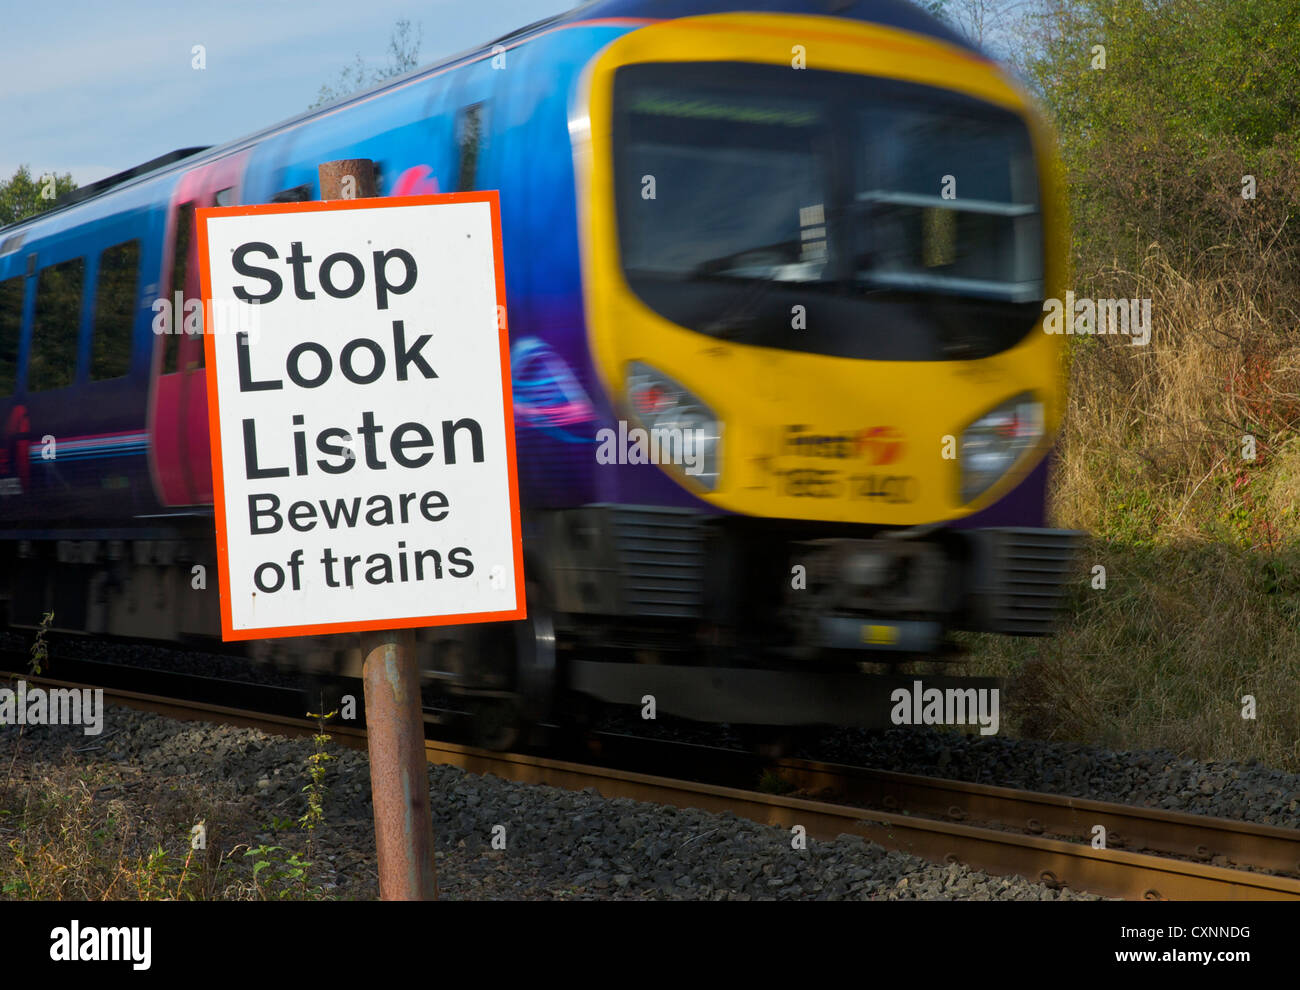 Speeding train and sign, by pedestrian crossing over railway line, warning people about trains - Stock Image